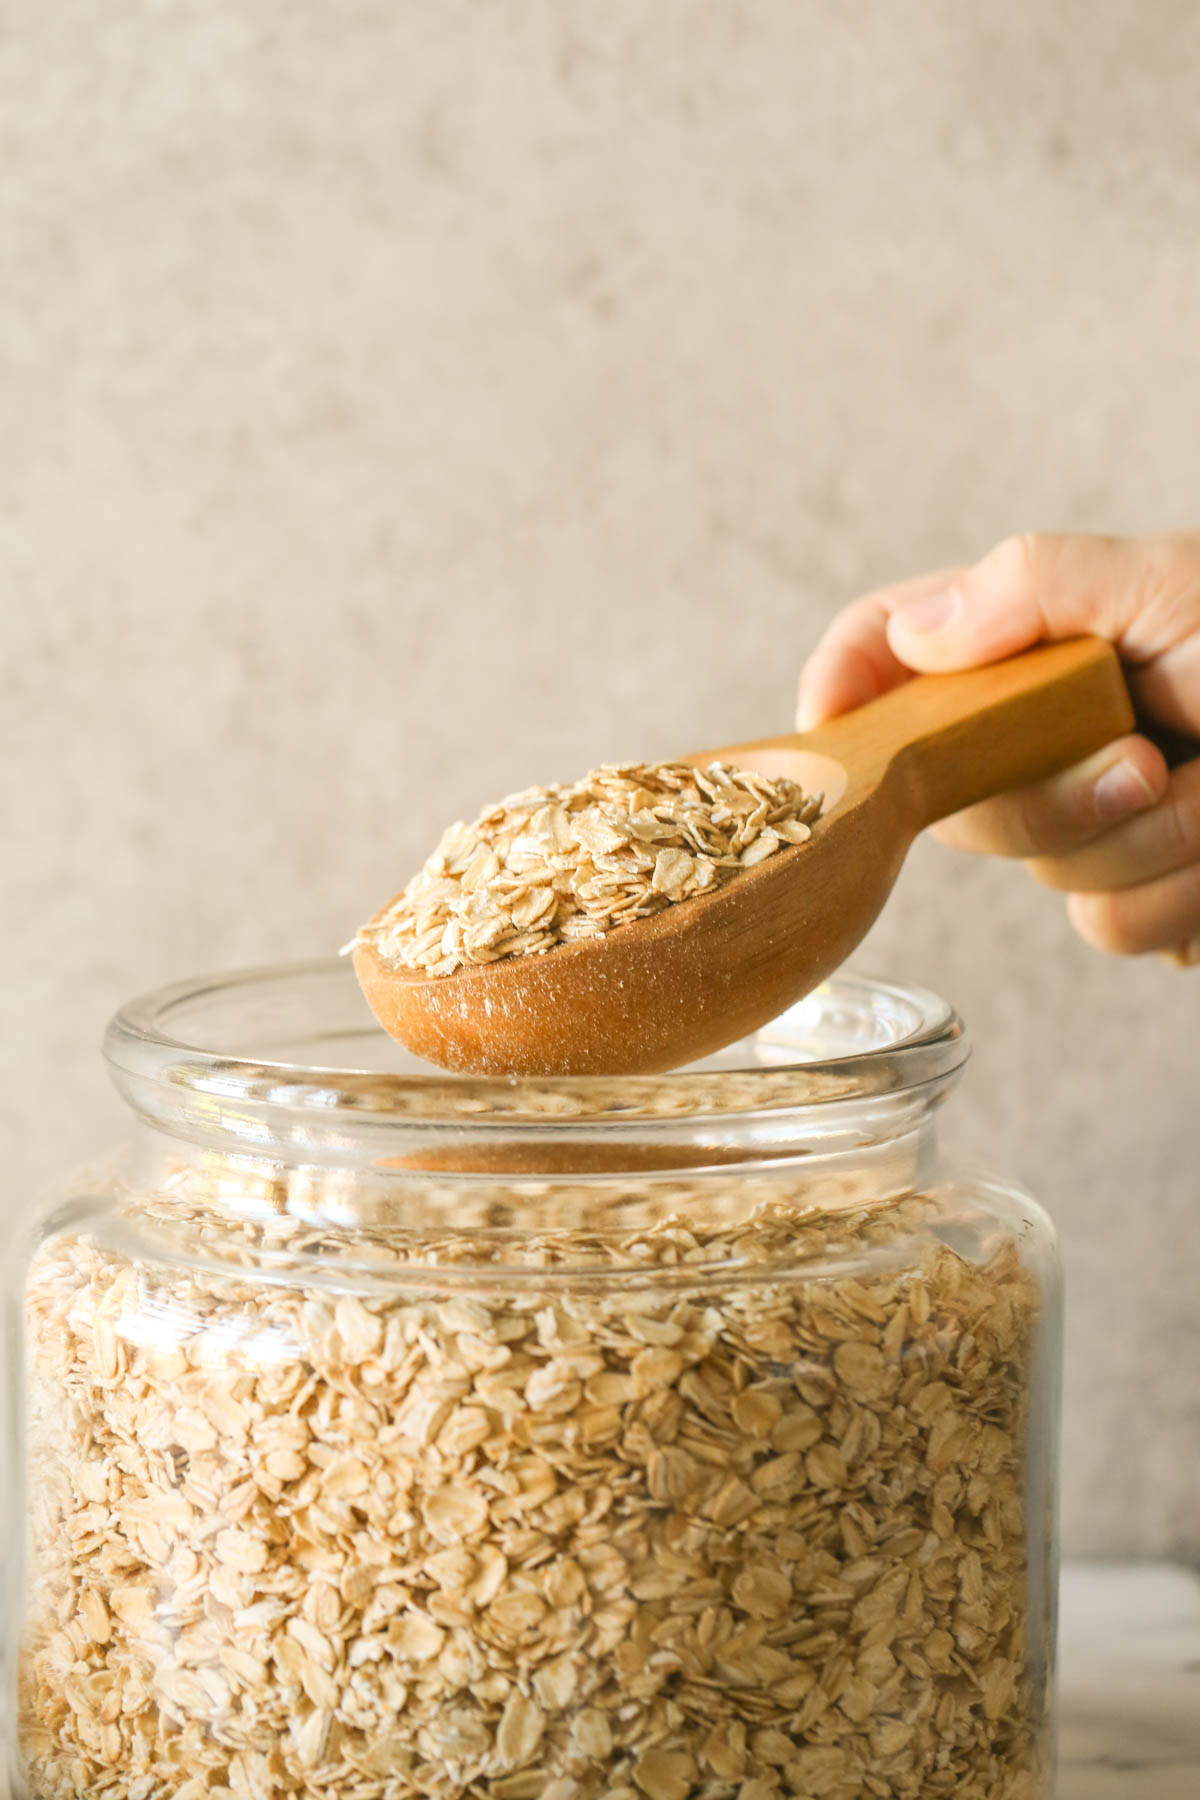 A large wooden scoop full of oats being held above a large glass jar of old fashioned oats.